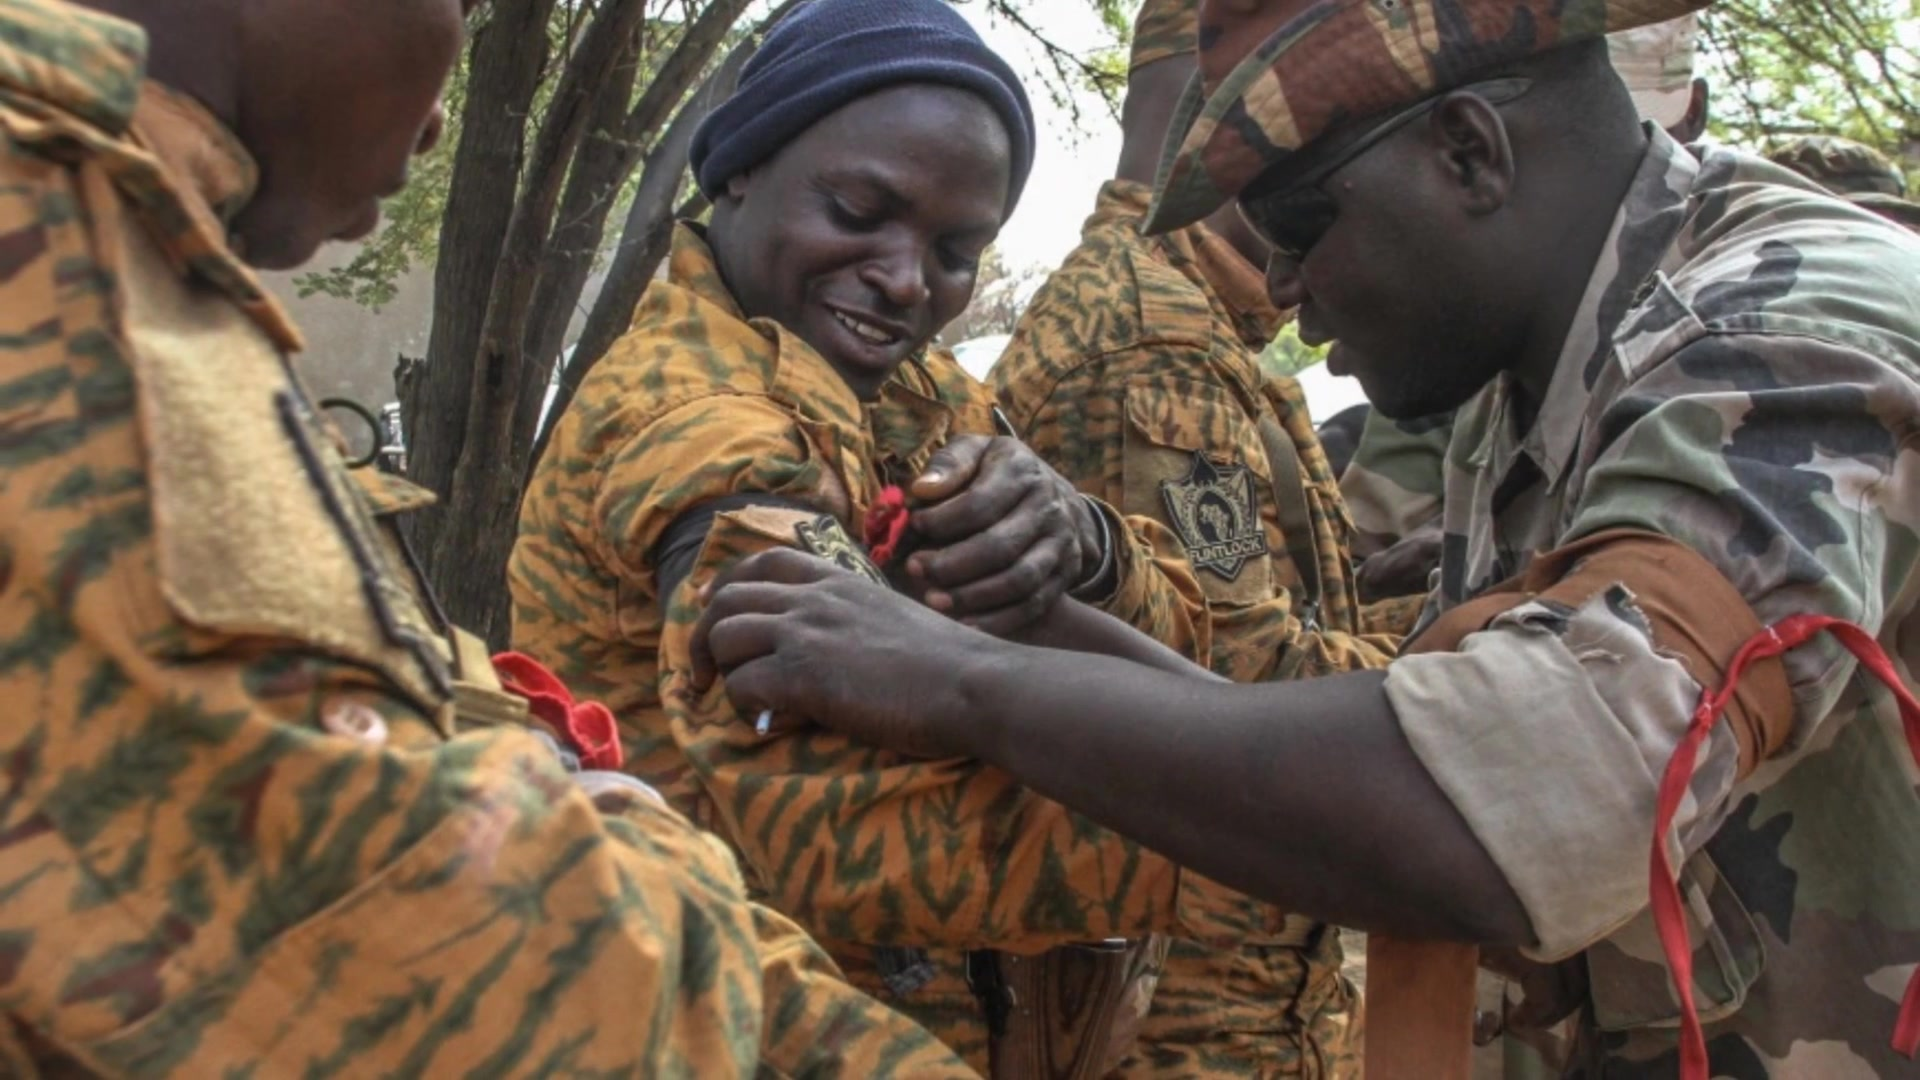 The International Health Specialist Program has led global health engagements during the annual Flintlock exercises since 2005. The capabilities developed during these engagements continue to be utilized in real world scenarios.